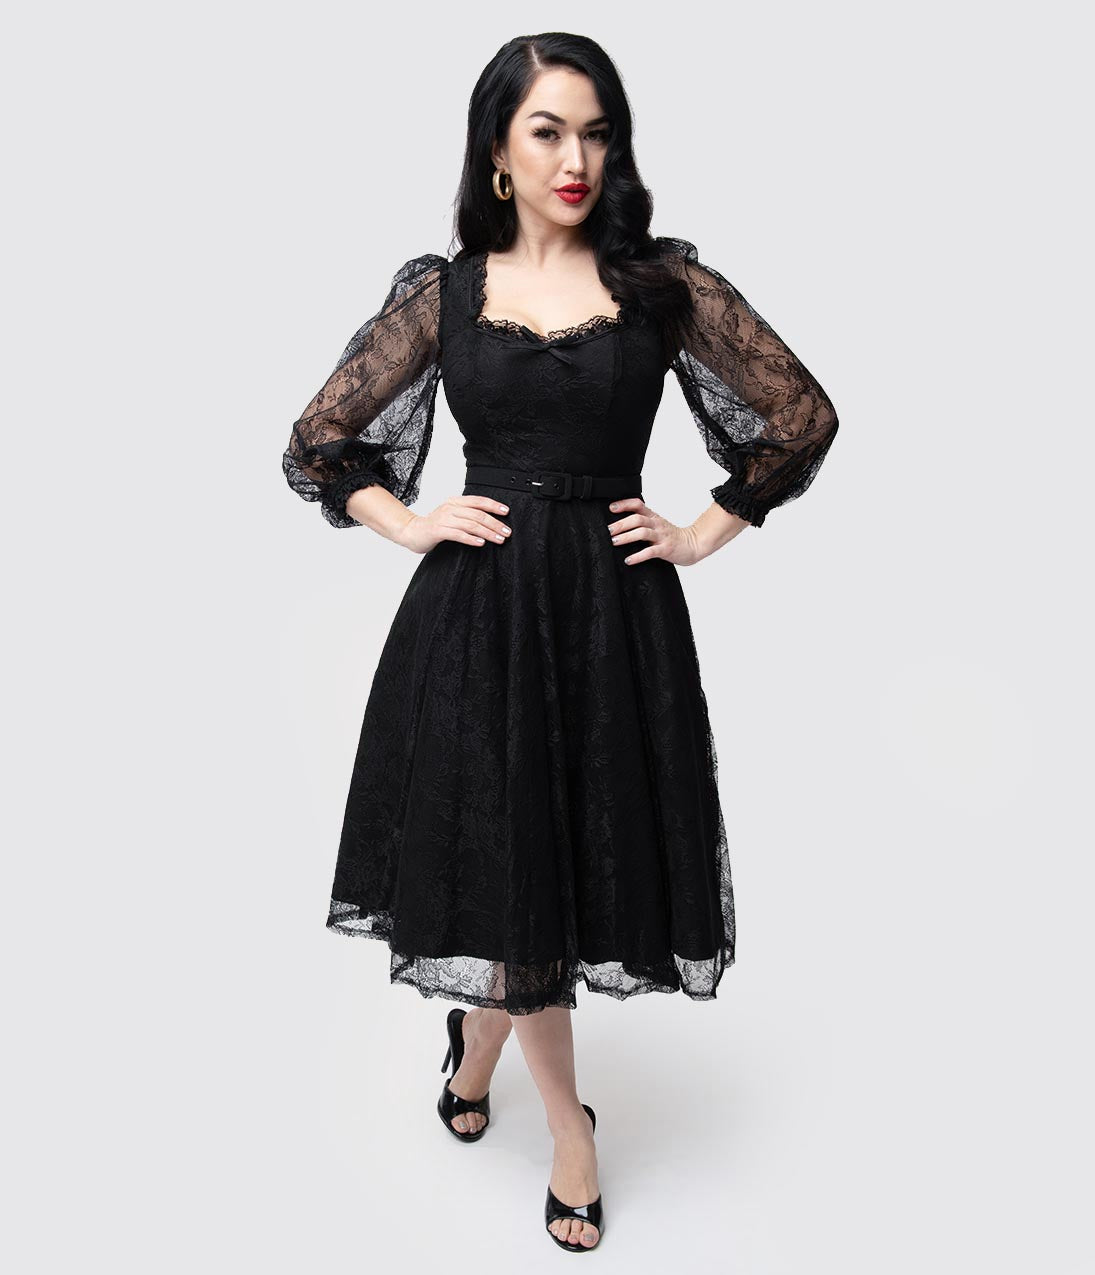 1930s Dresses | 30s Art Deco Dress Vixen By Micheline Pitt Black Lace Decadence Swing Dress $186.00 AT vintagedancer.com